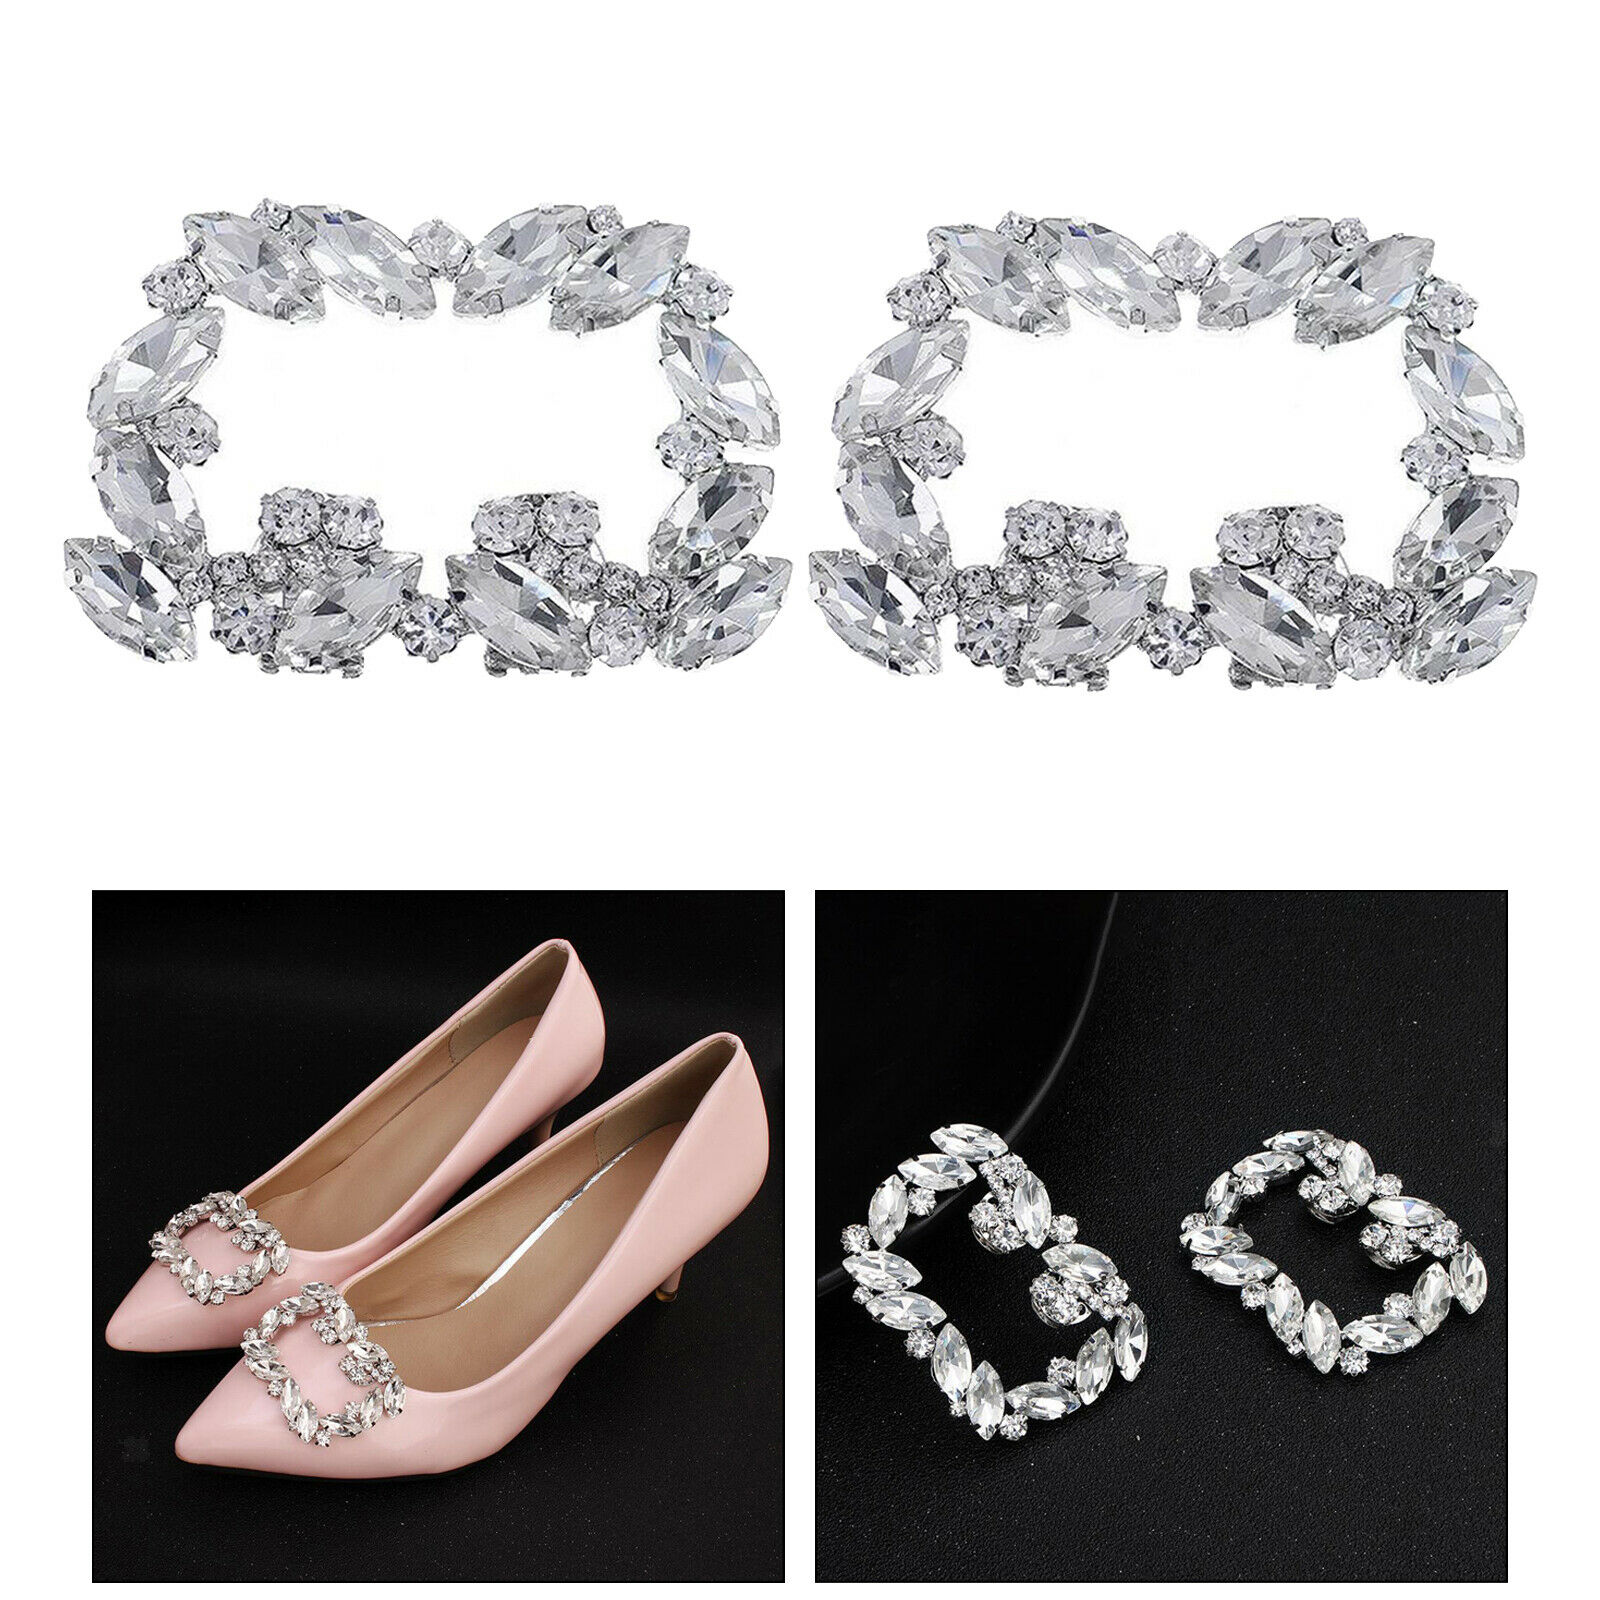 2PCS Crystal Shoe Clips Rhinestone Charms Buckle Removable Wedding Decorations